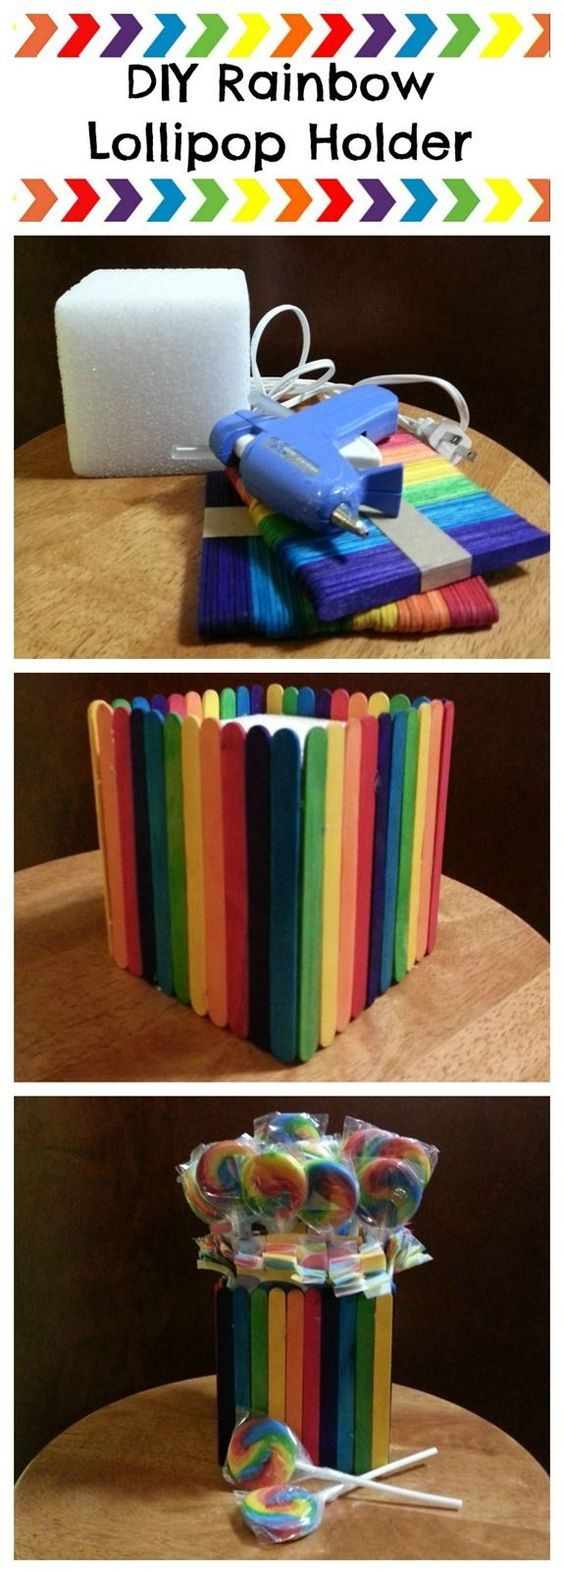 DIY Rainbow Lollipop Holder. A great craft idea and DIY centerpiece to complete your rainbow party theme.: